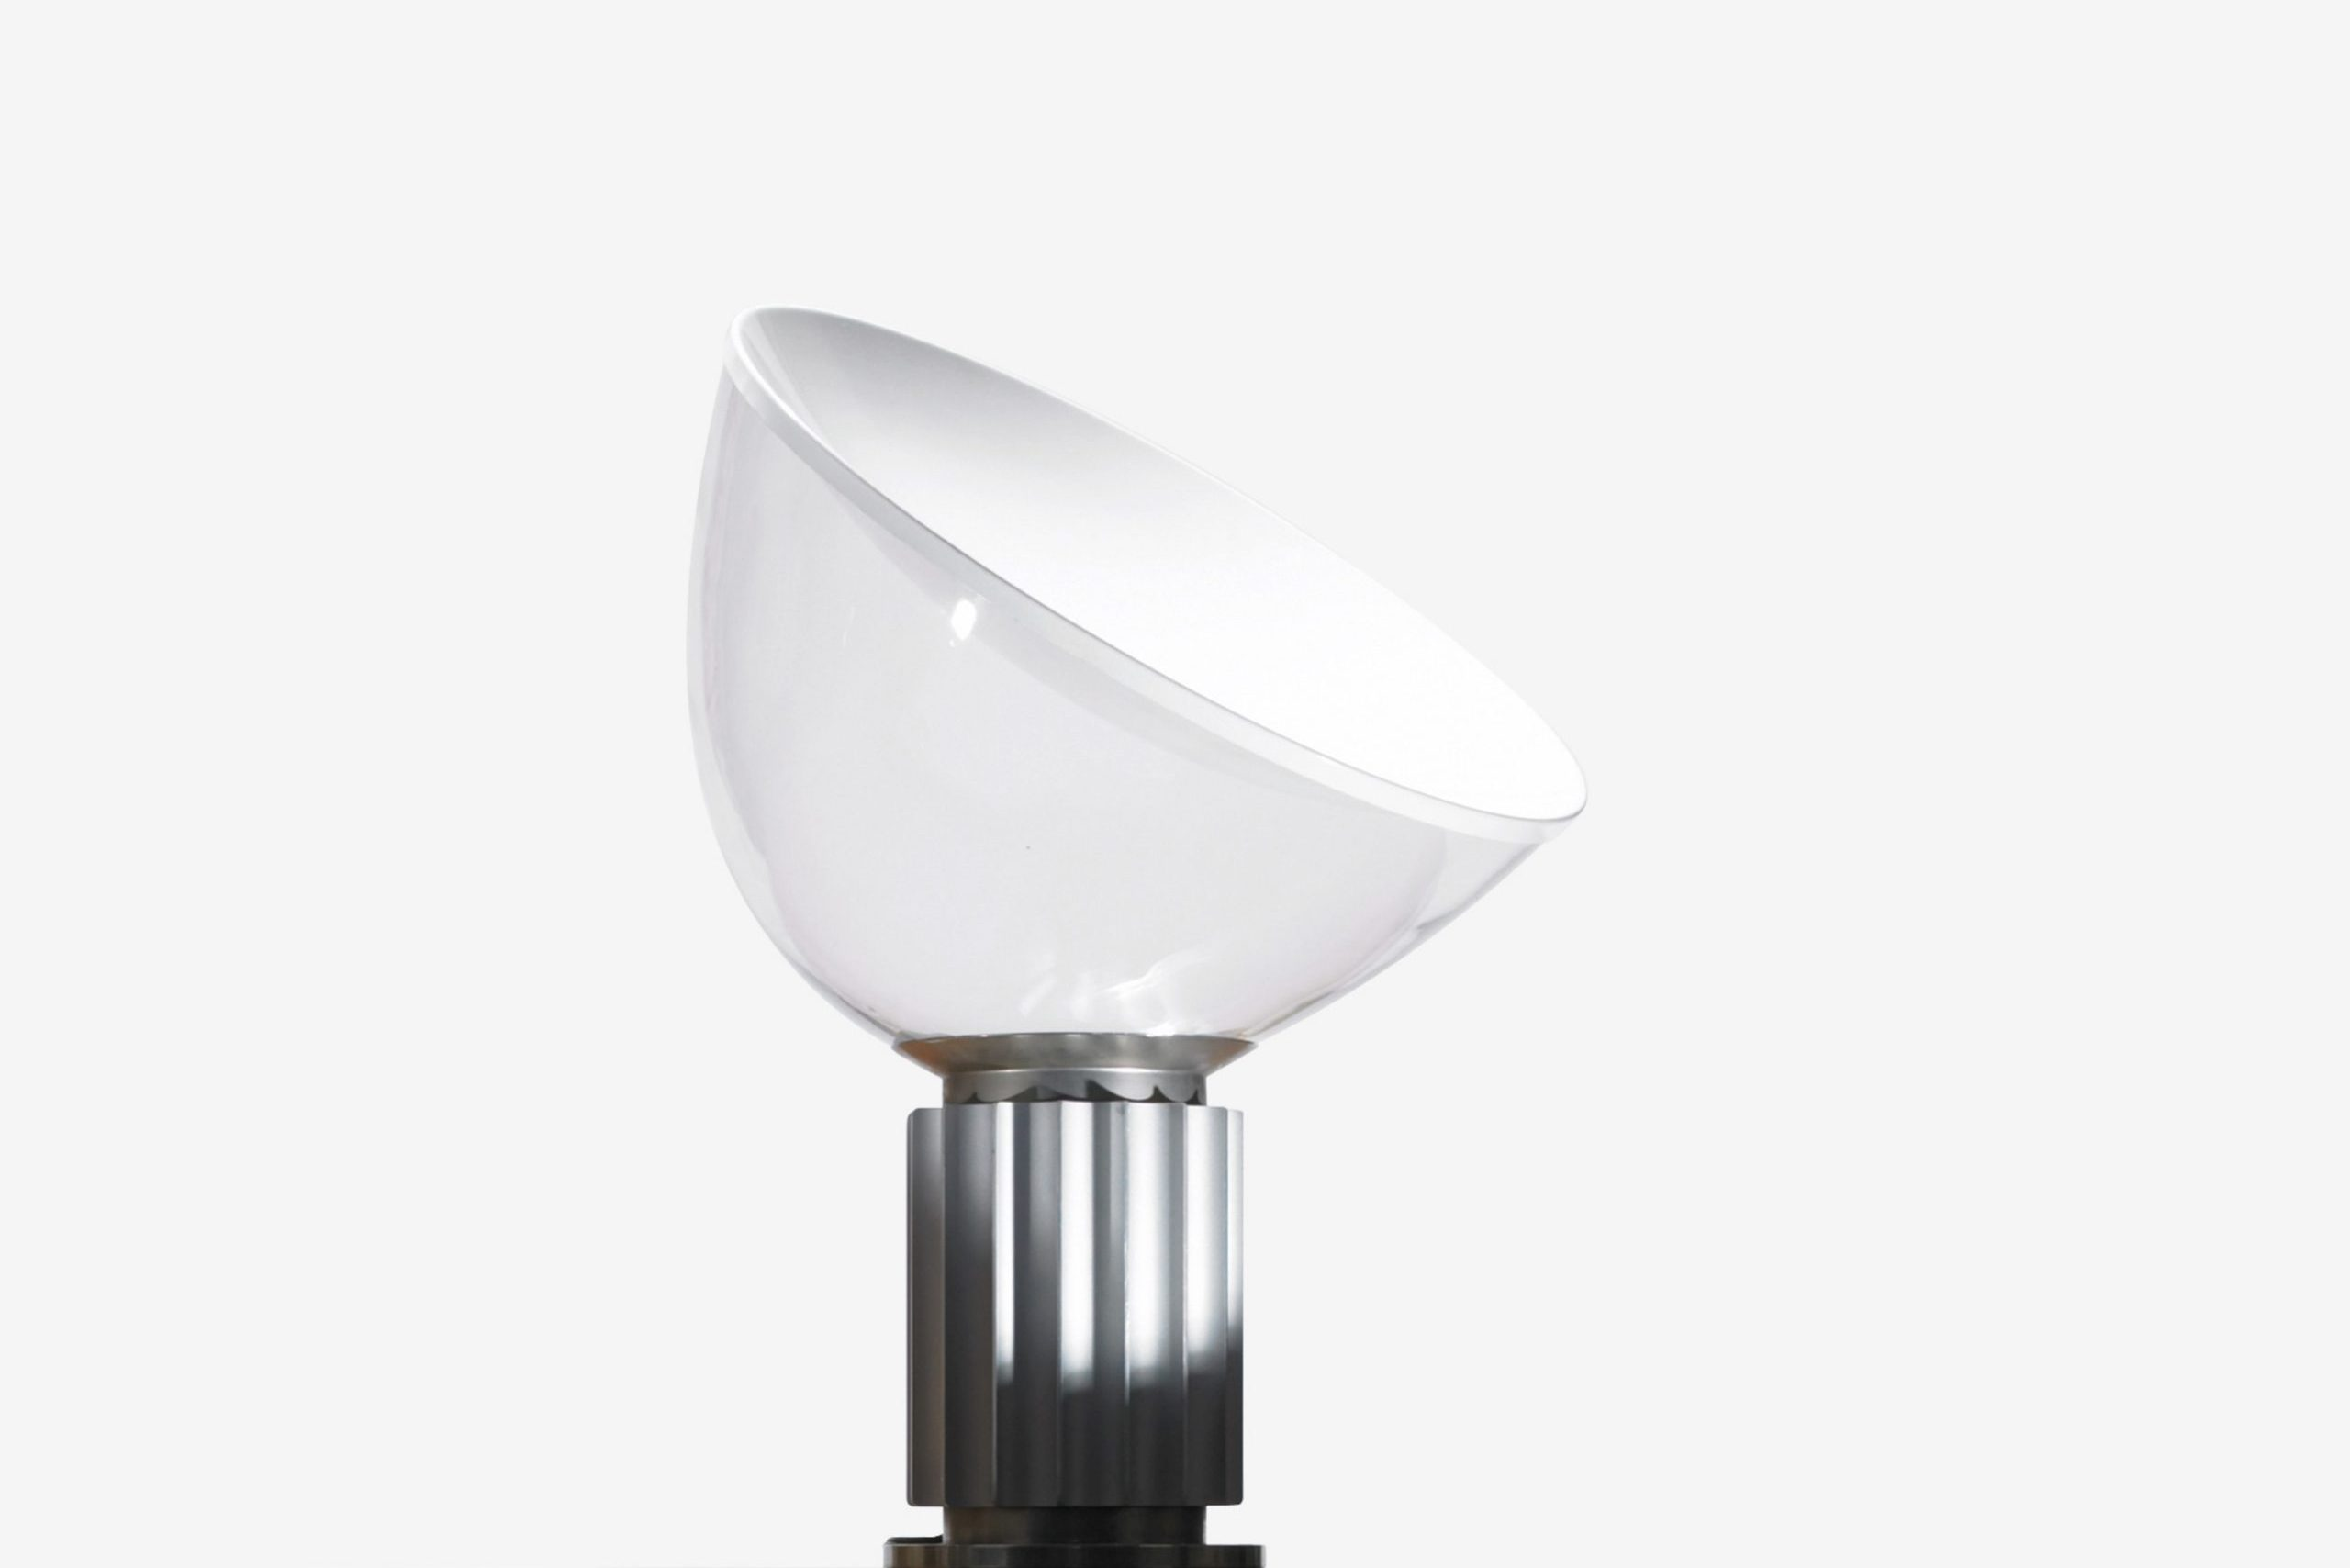 Taccia table lamp by Pier Giacomo and Achille Castiglioni and produced by FLOS